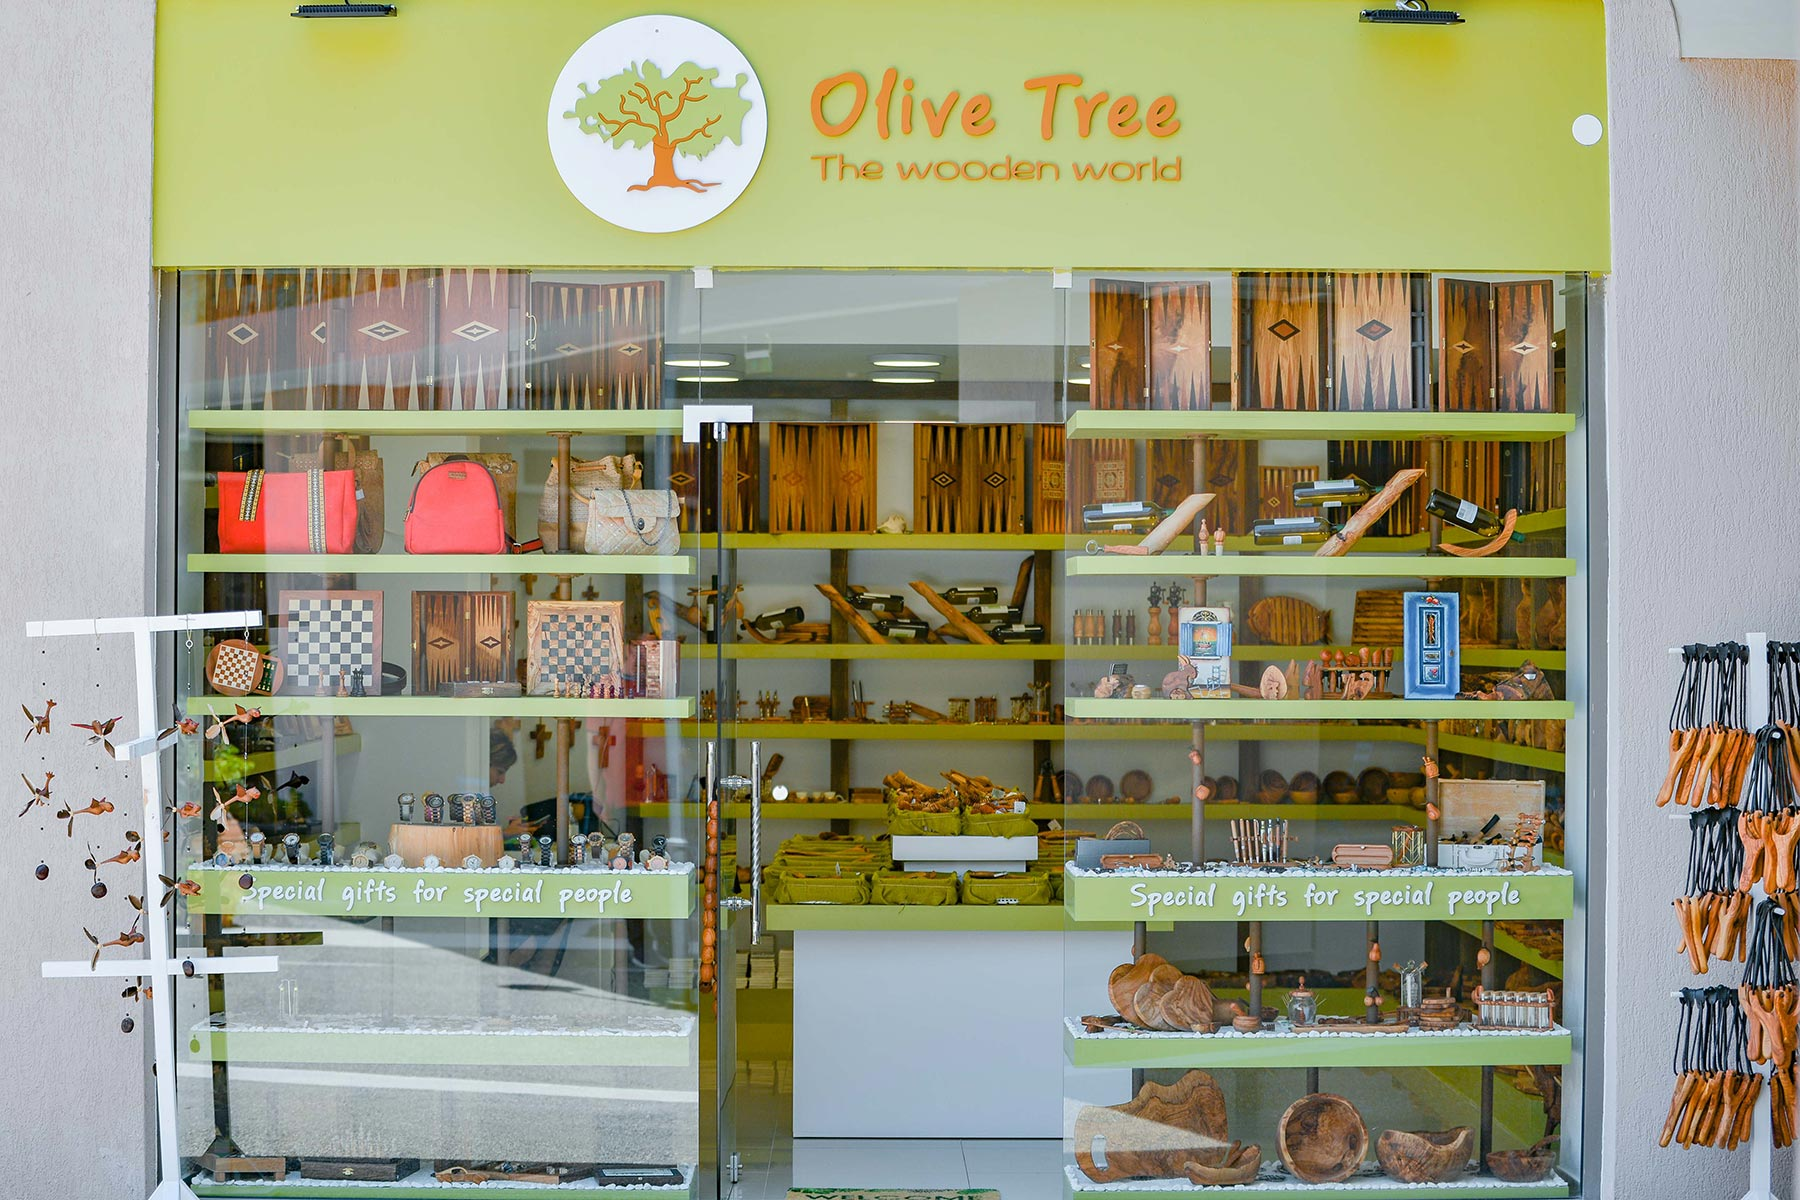 Olive Tree The Wooden World